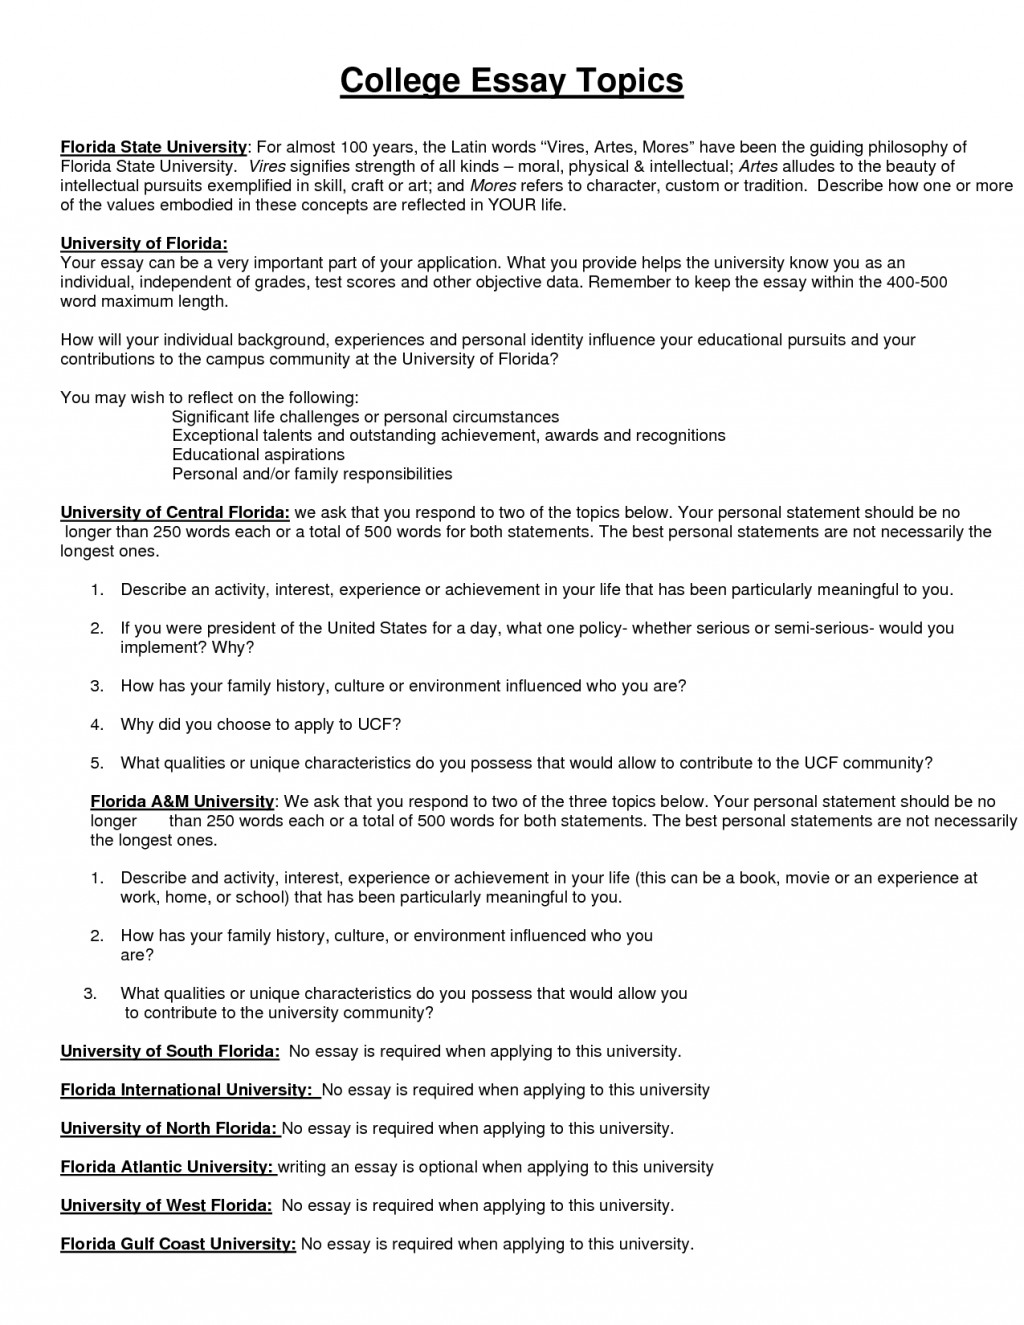 003 Essay Example College Questions Frightening Crazy Application Harvard Prompts 2017 Mit Prompt Large